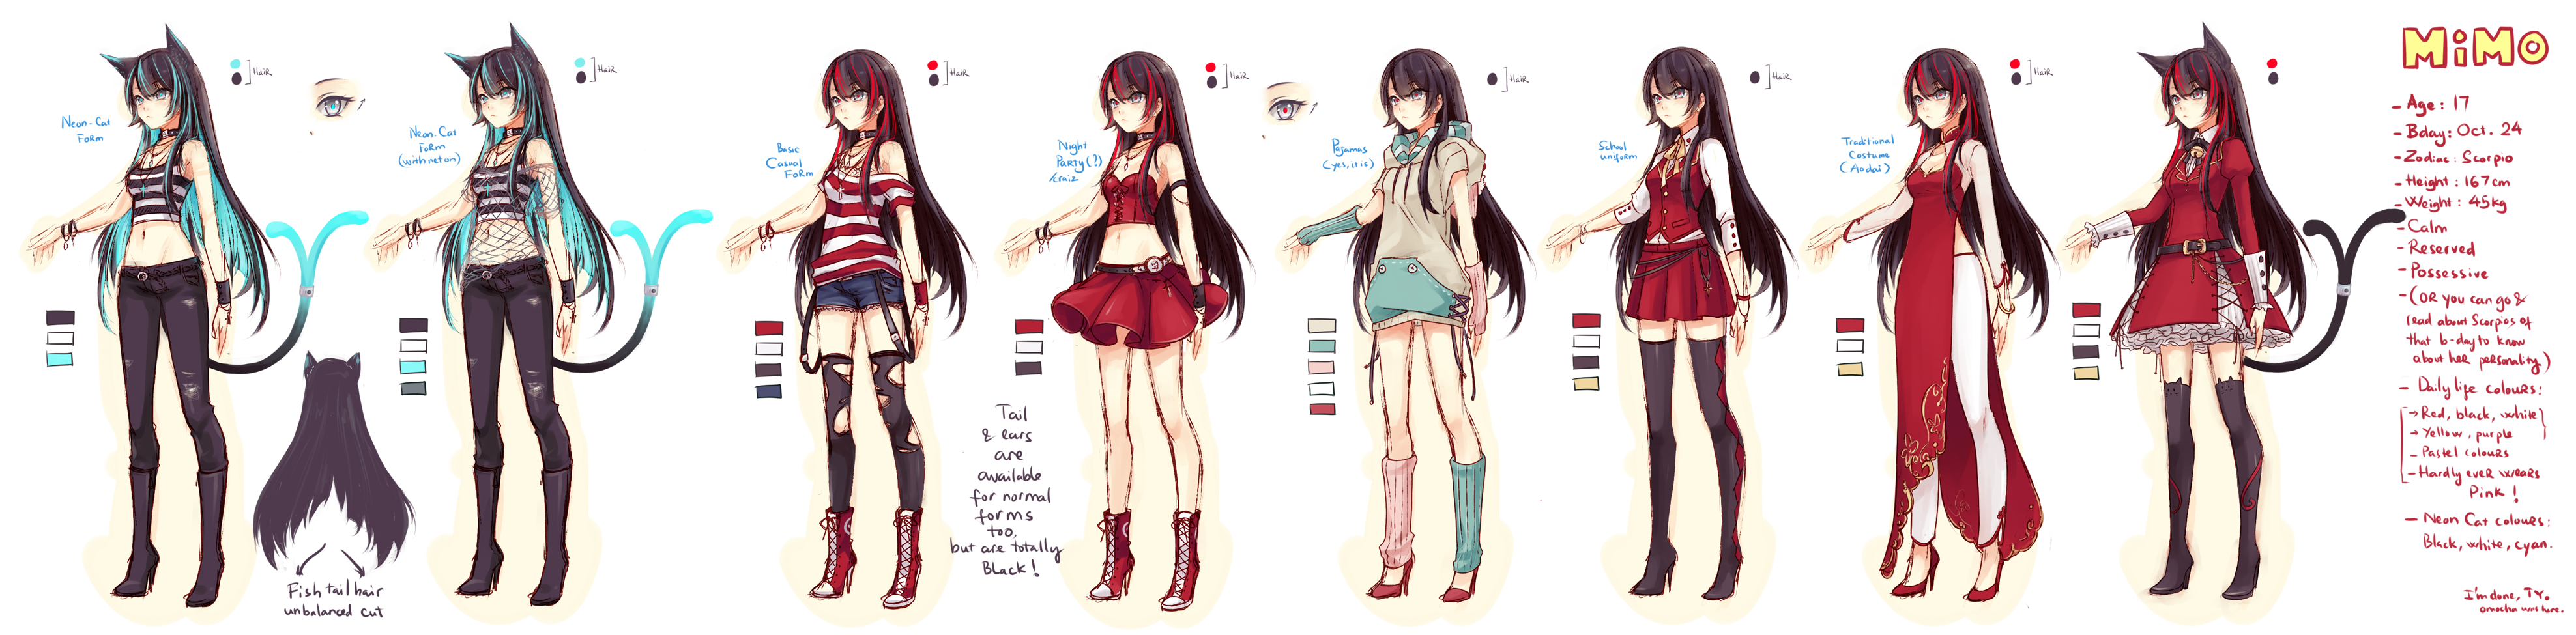 Mascot Mimo S Outfit References By Zenithomocha On Deviantart